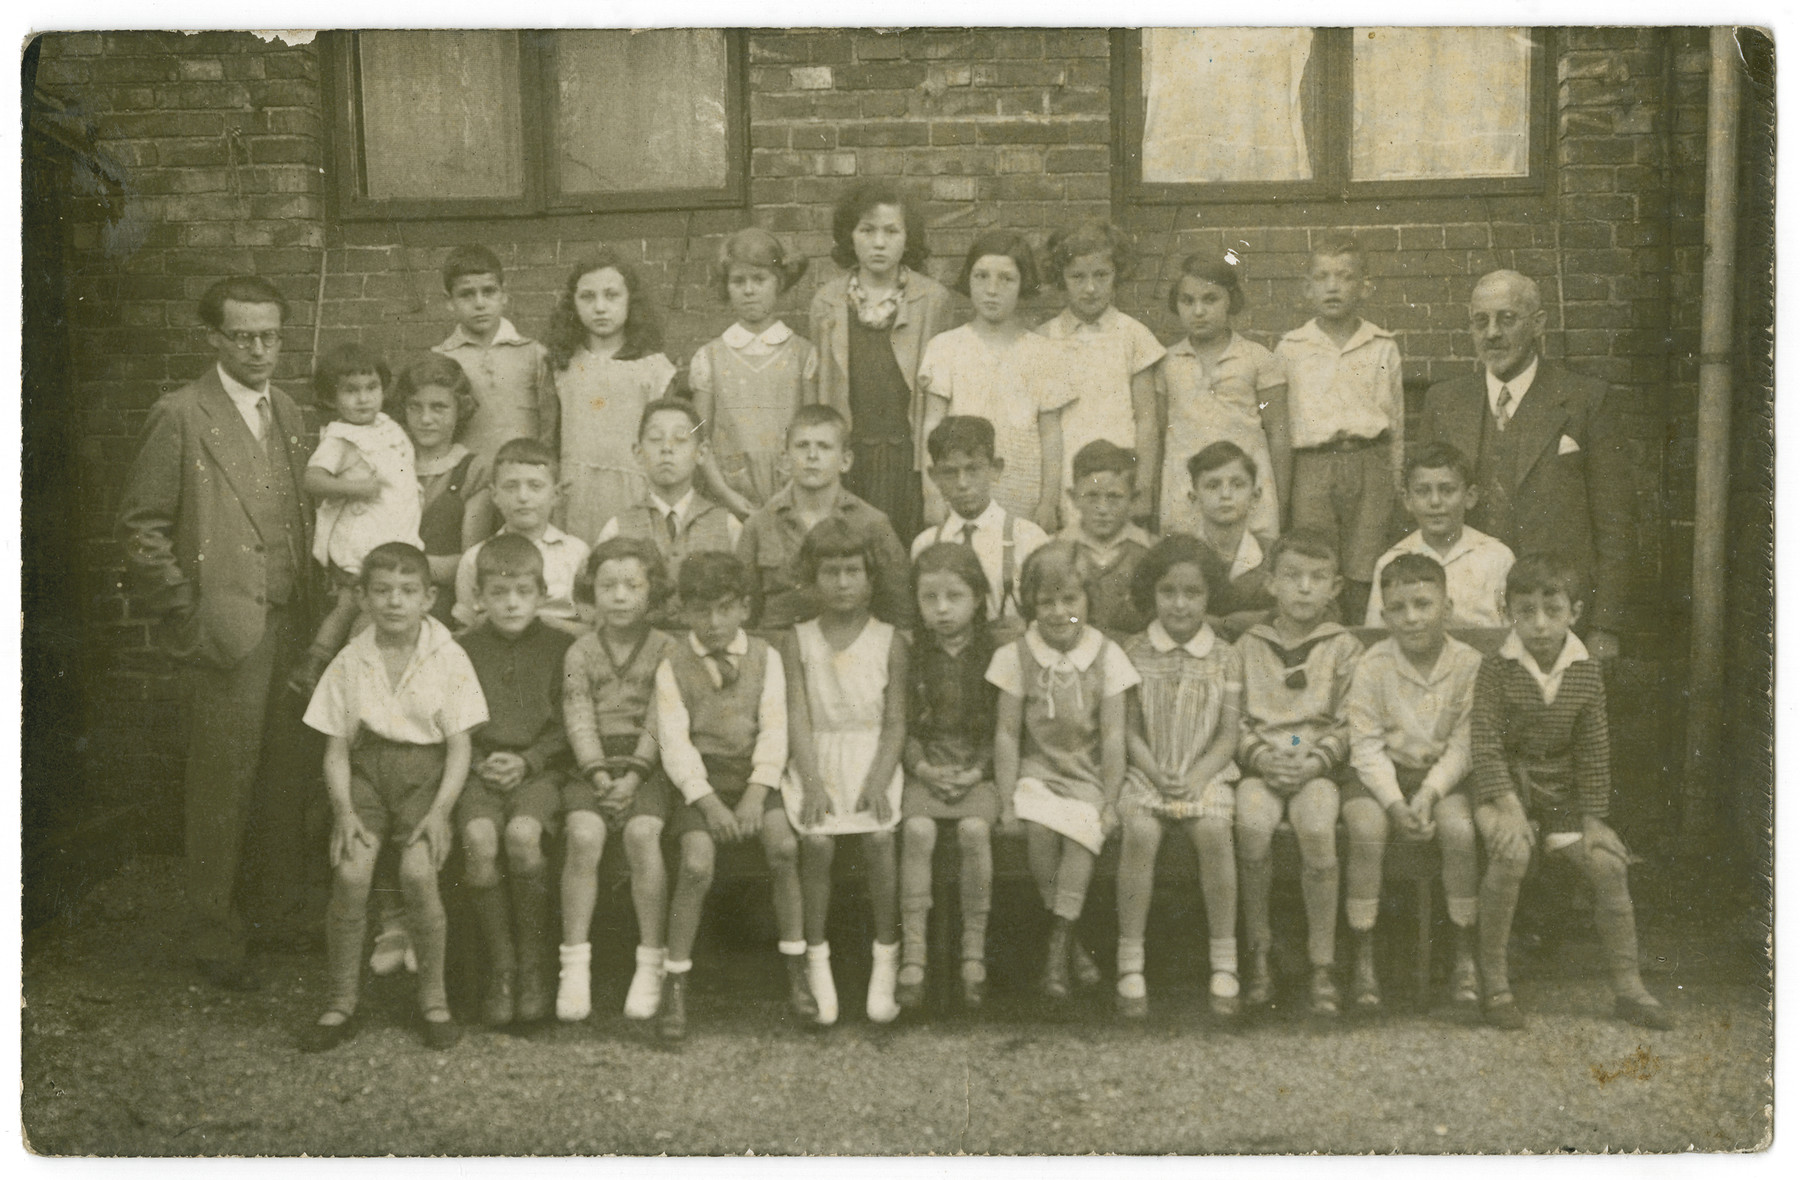 Group portrait of a class in Hildeshein.  Doris Edelman (Nee Tager) is pictured third from the right in the top row.